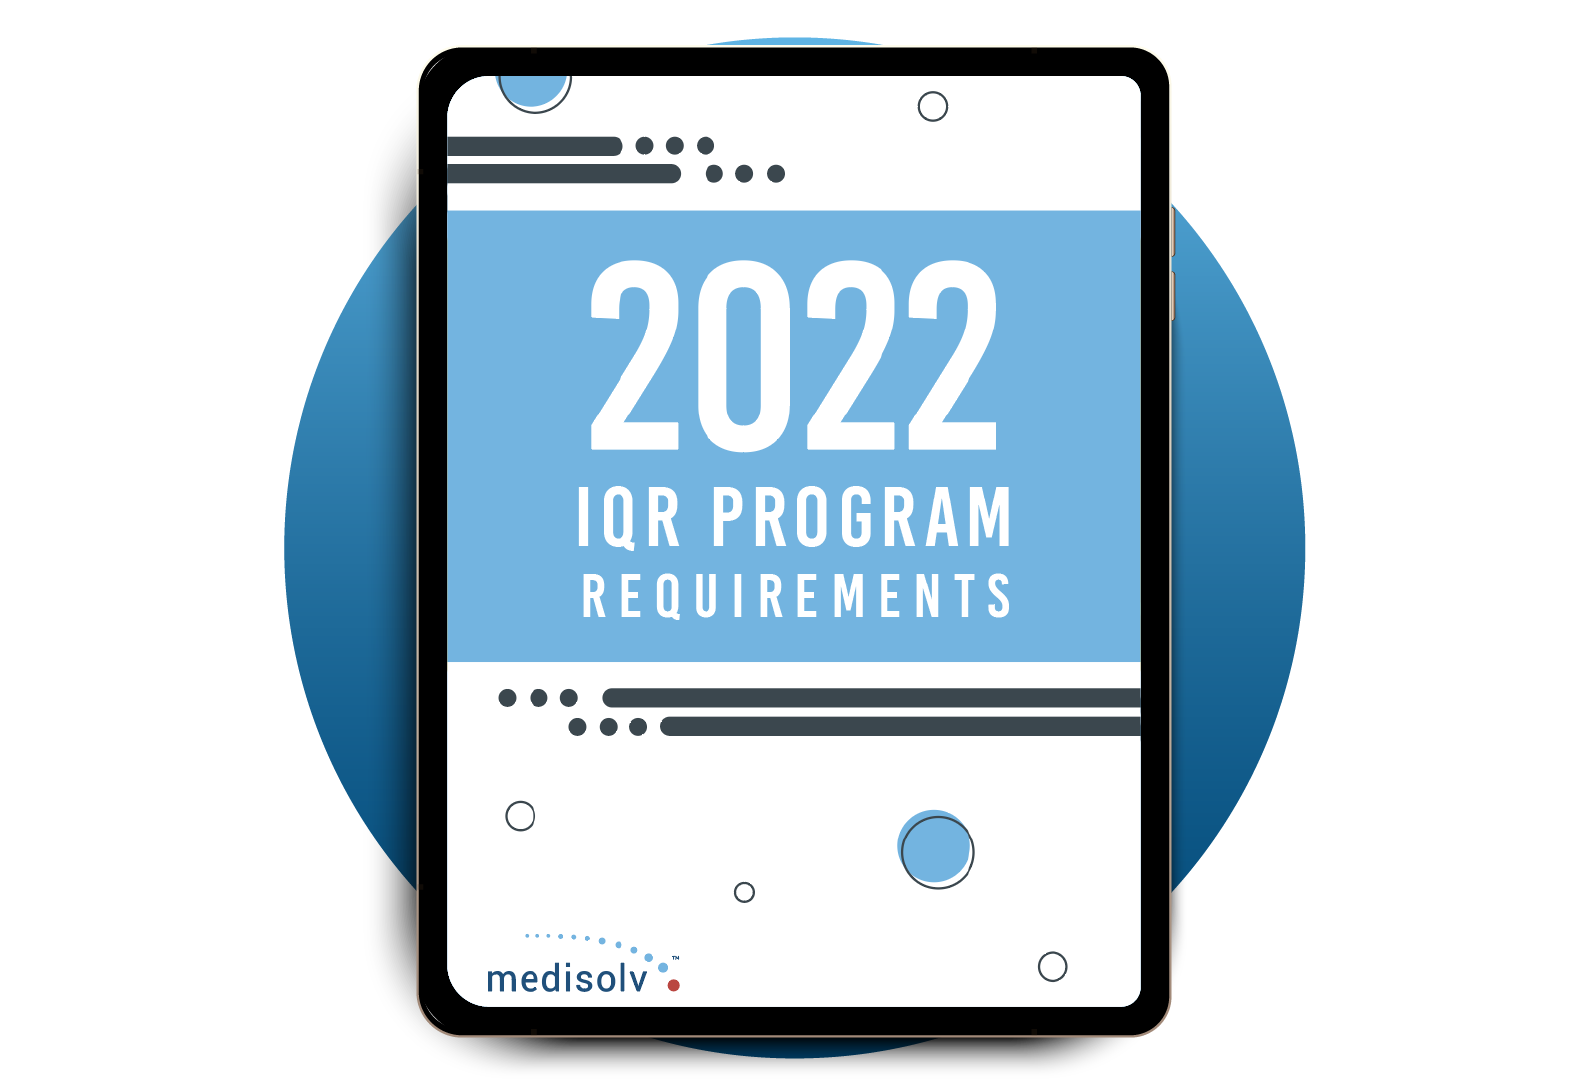 IQR Requirements for 2022